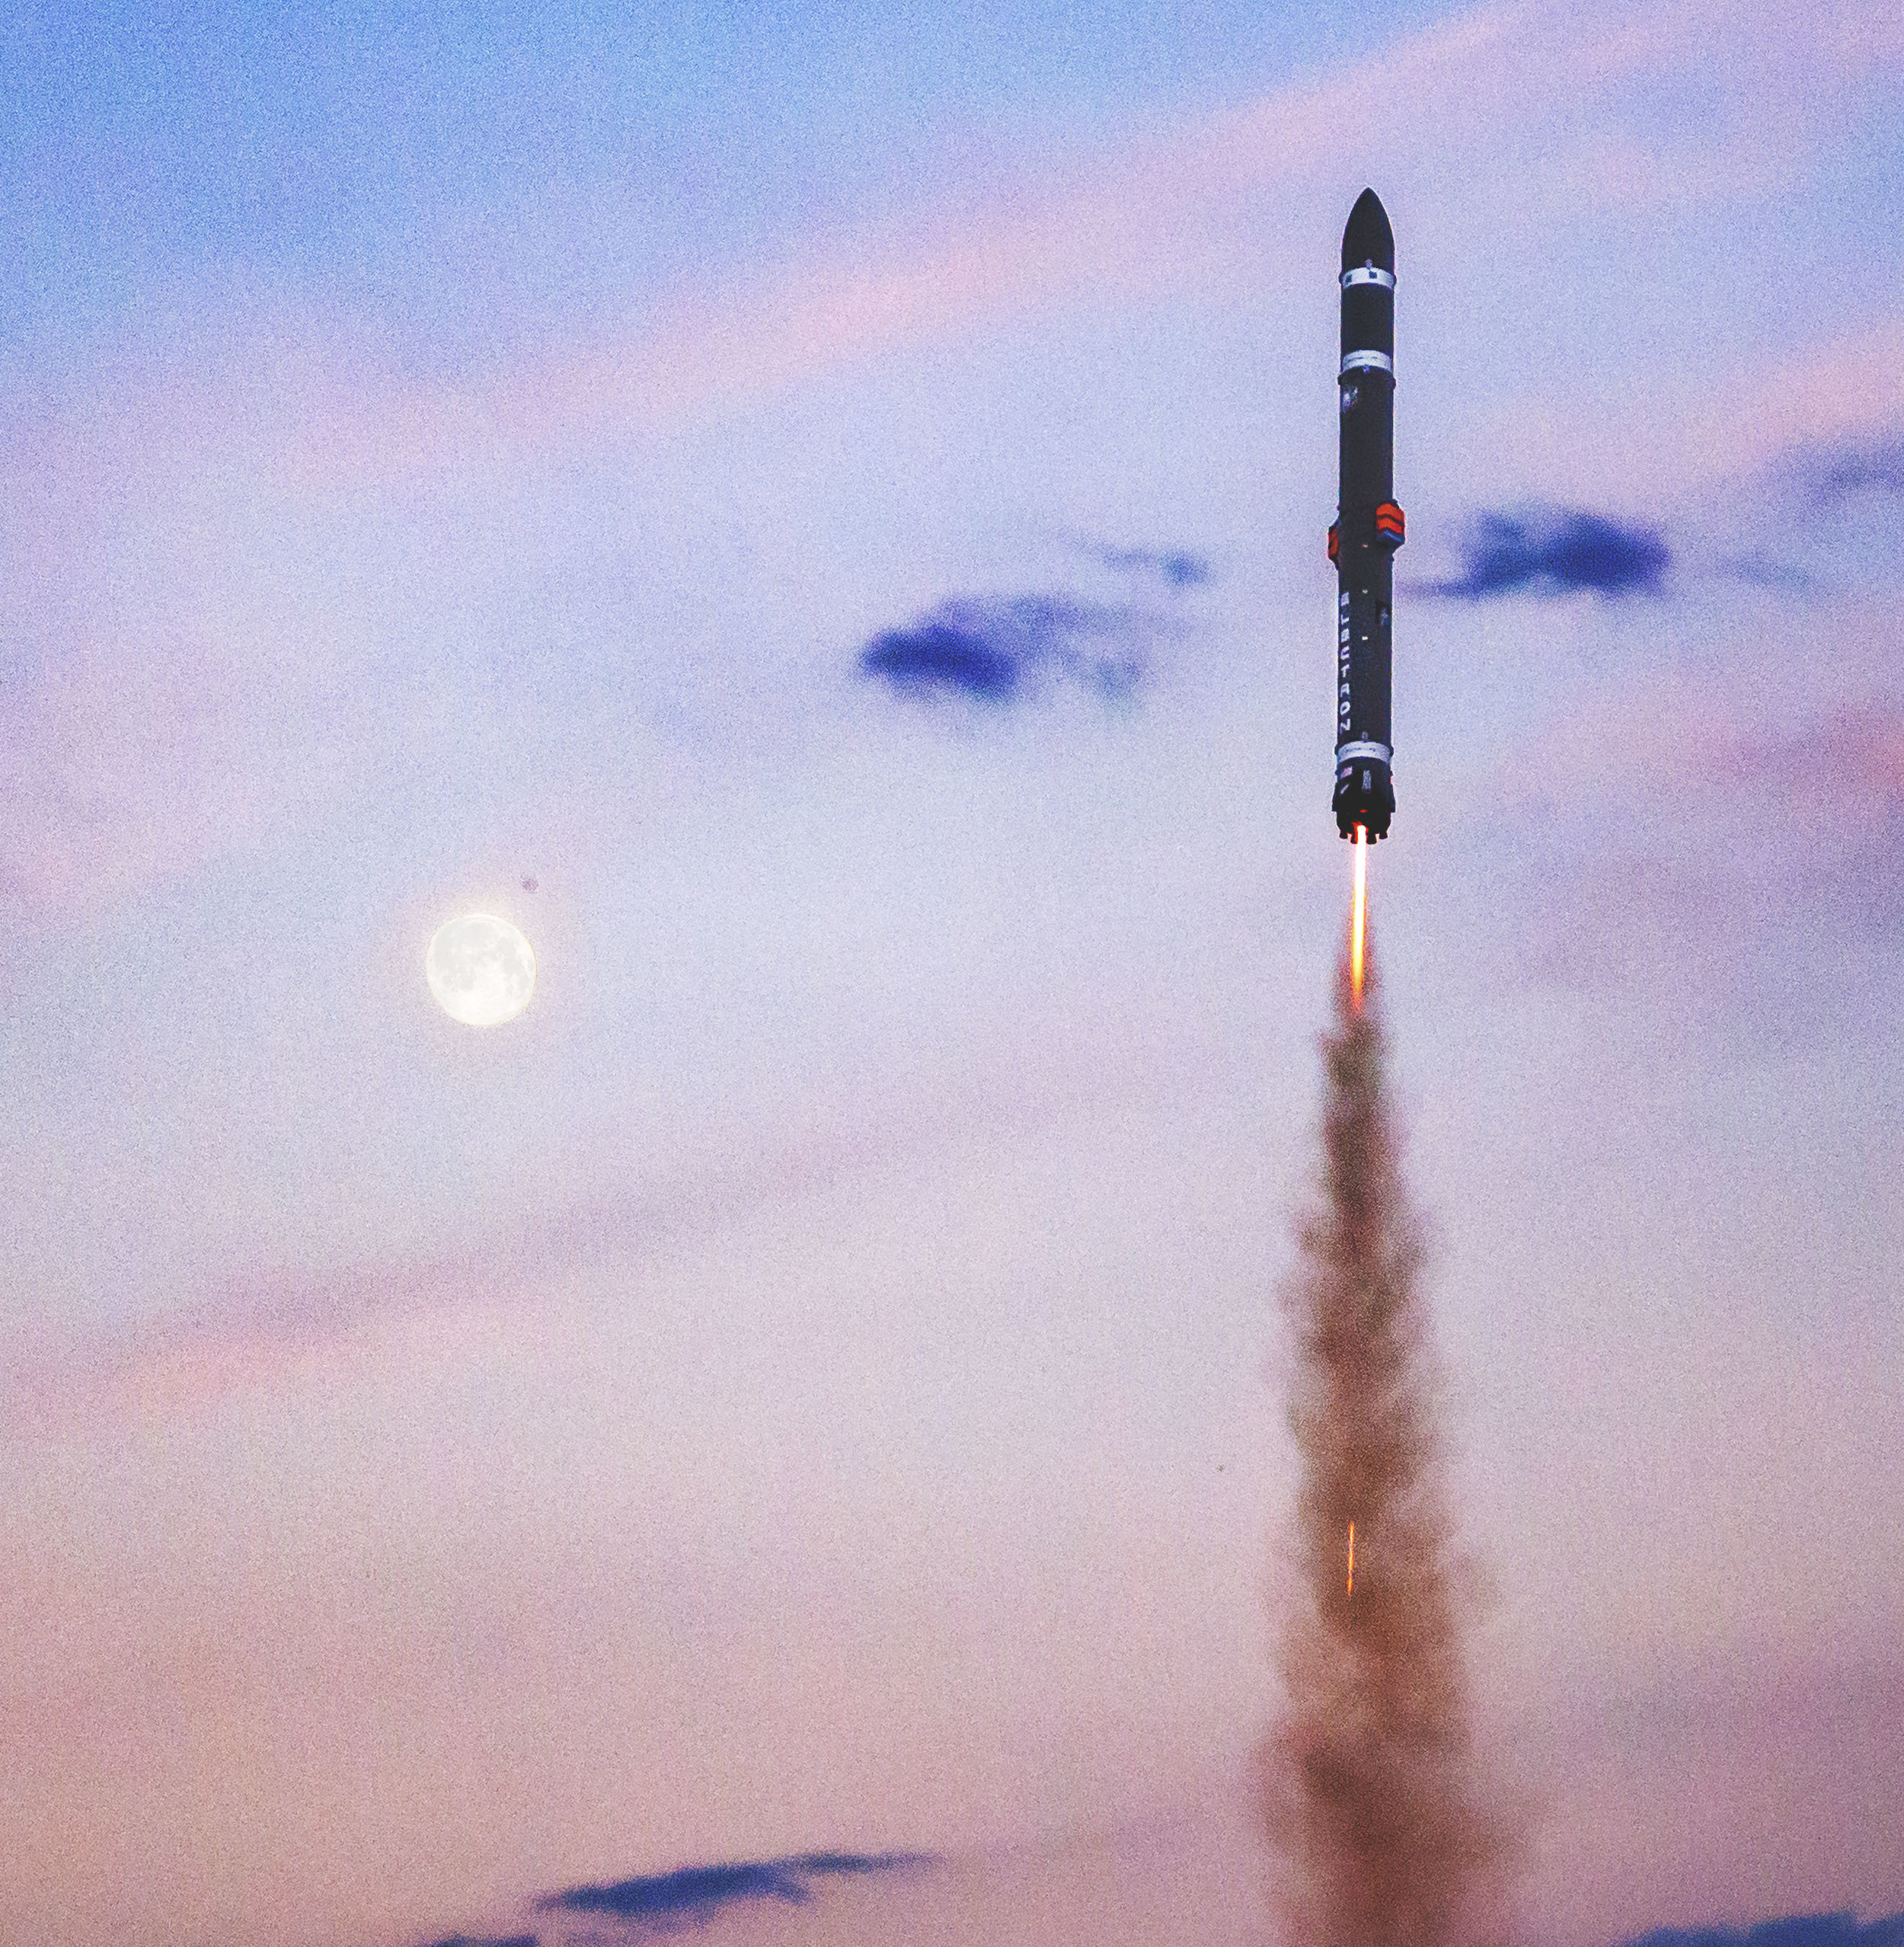 Electron soars past the moon at dusk